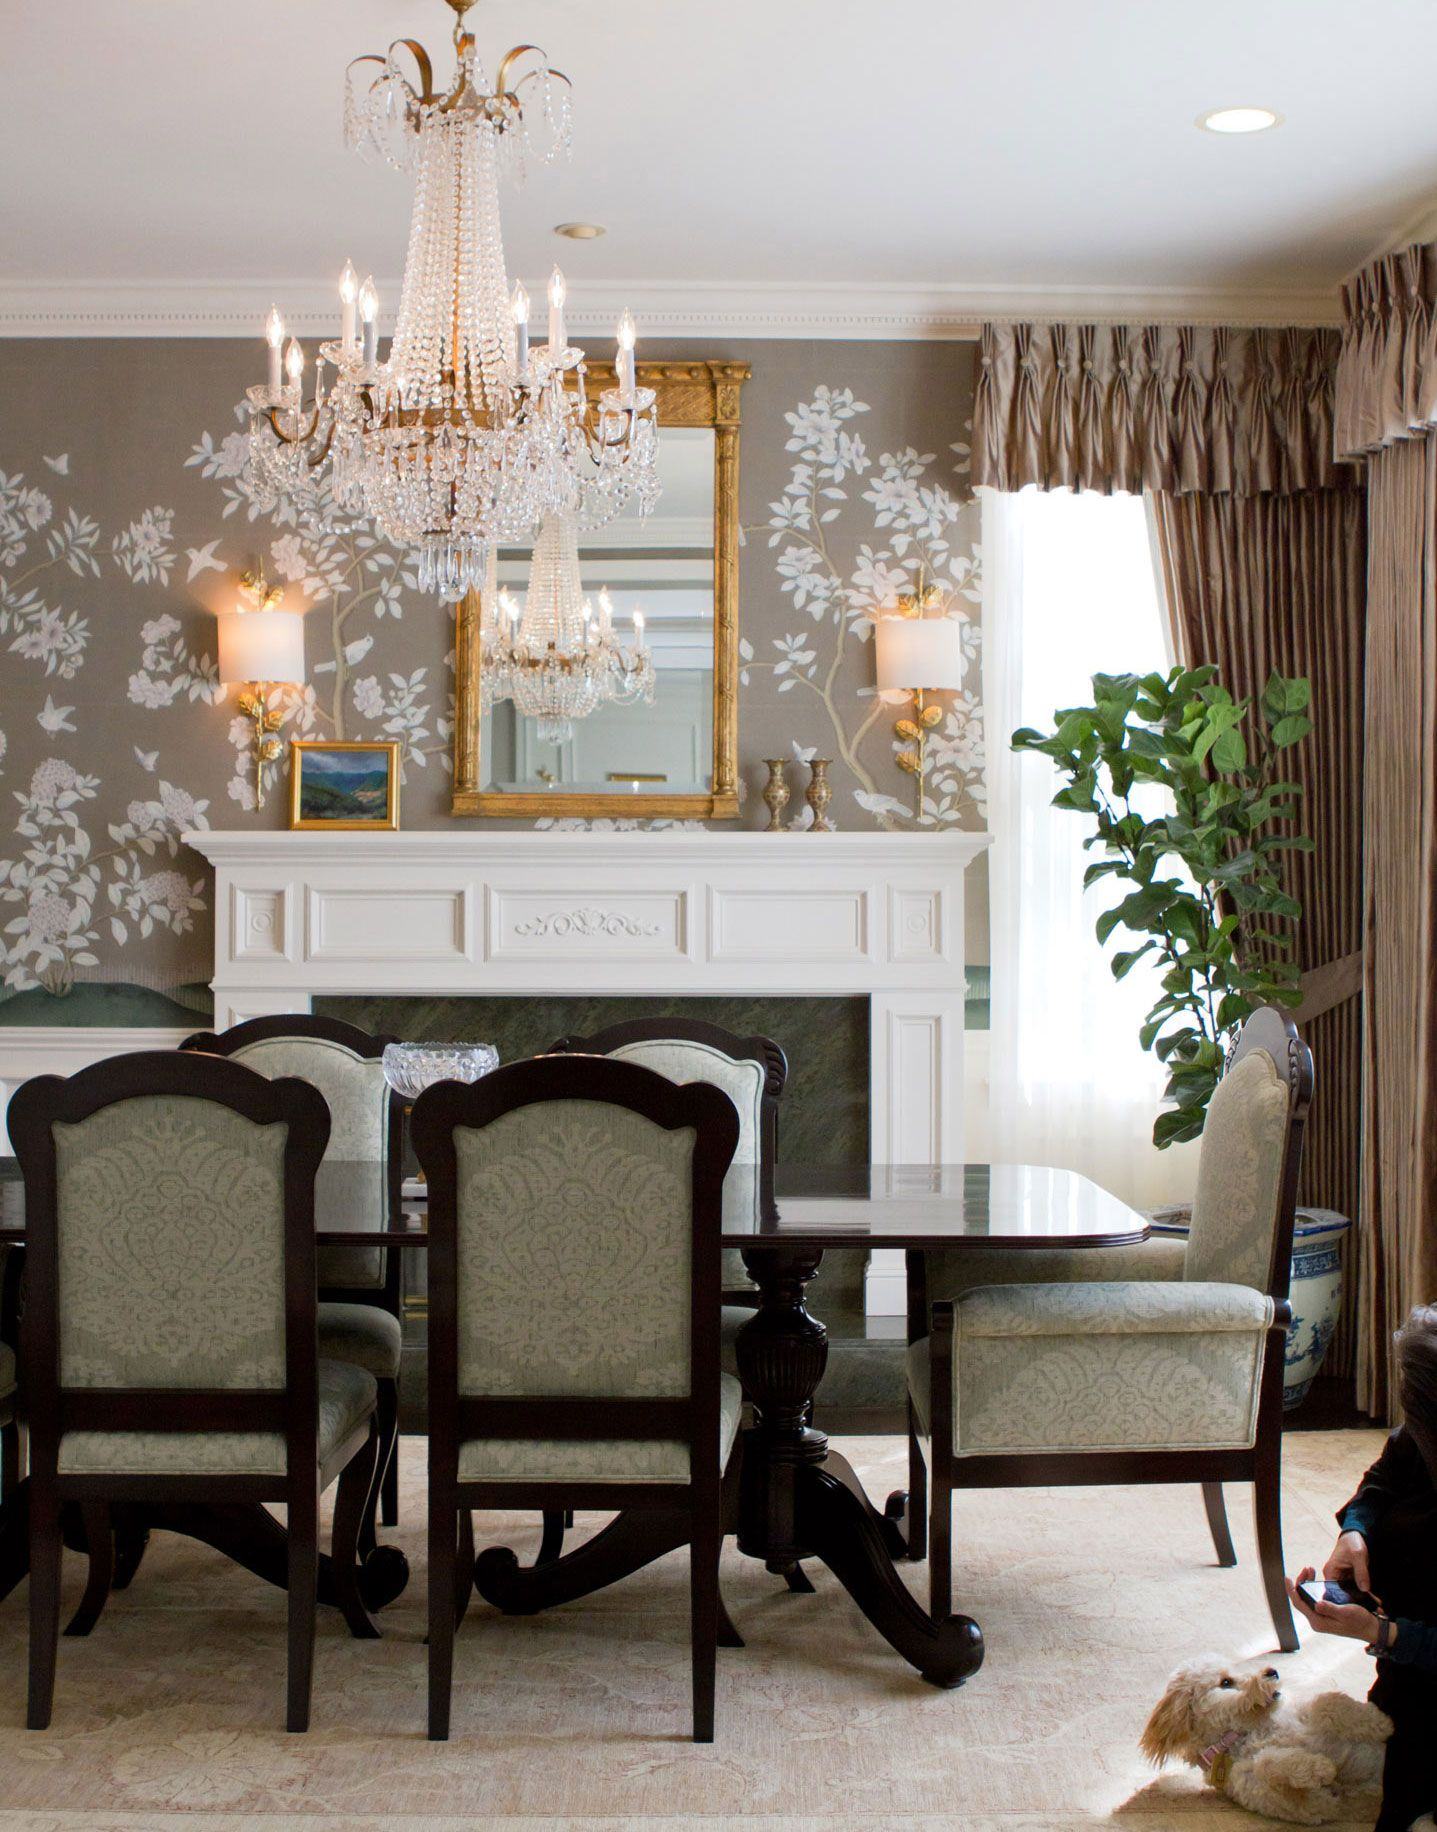 British colonial dining room decor with empire style crystal british colonial dining room decor with empire style crystal chandelier mozeypictures Choice Image